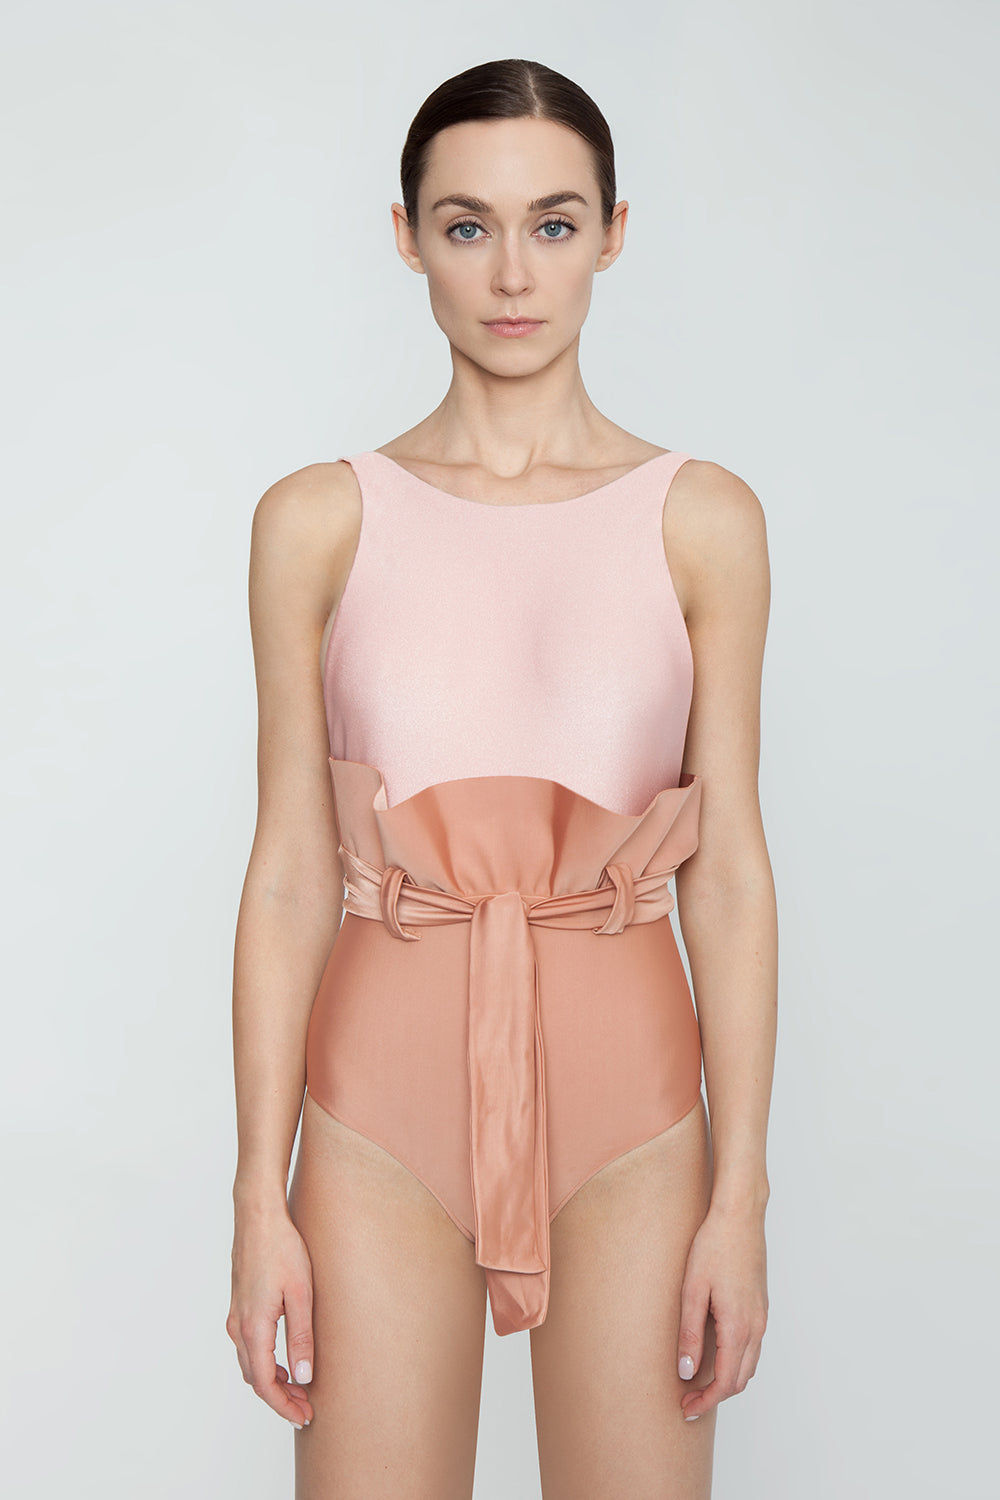 ADRIANA DEGREAS Clochard Ruffle Waist Tie One Piece Swimsuit - Bicolor Light Pink/Rose Pink One Piece | Bicolor Light Pink/Rose Pink| Adriana Degreas Bicolor Clochard One Piece Swimsuit - Light Pink/Rose Pink Features:  Slight scoop neckline Thick back straps Ruffle detail  Self tie waist  Moderate coverage  Front View